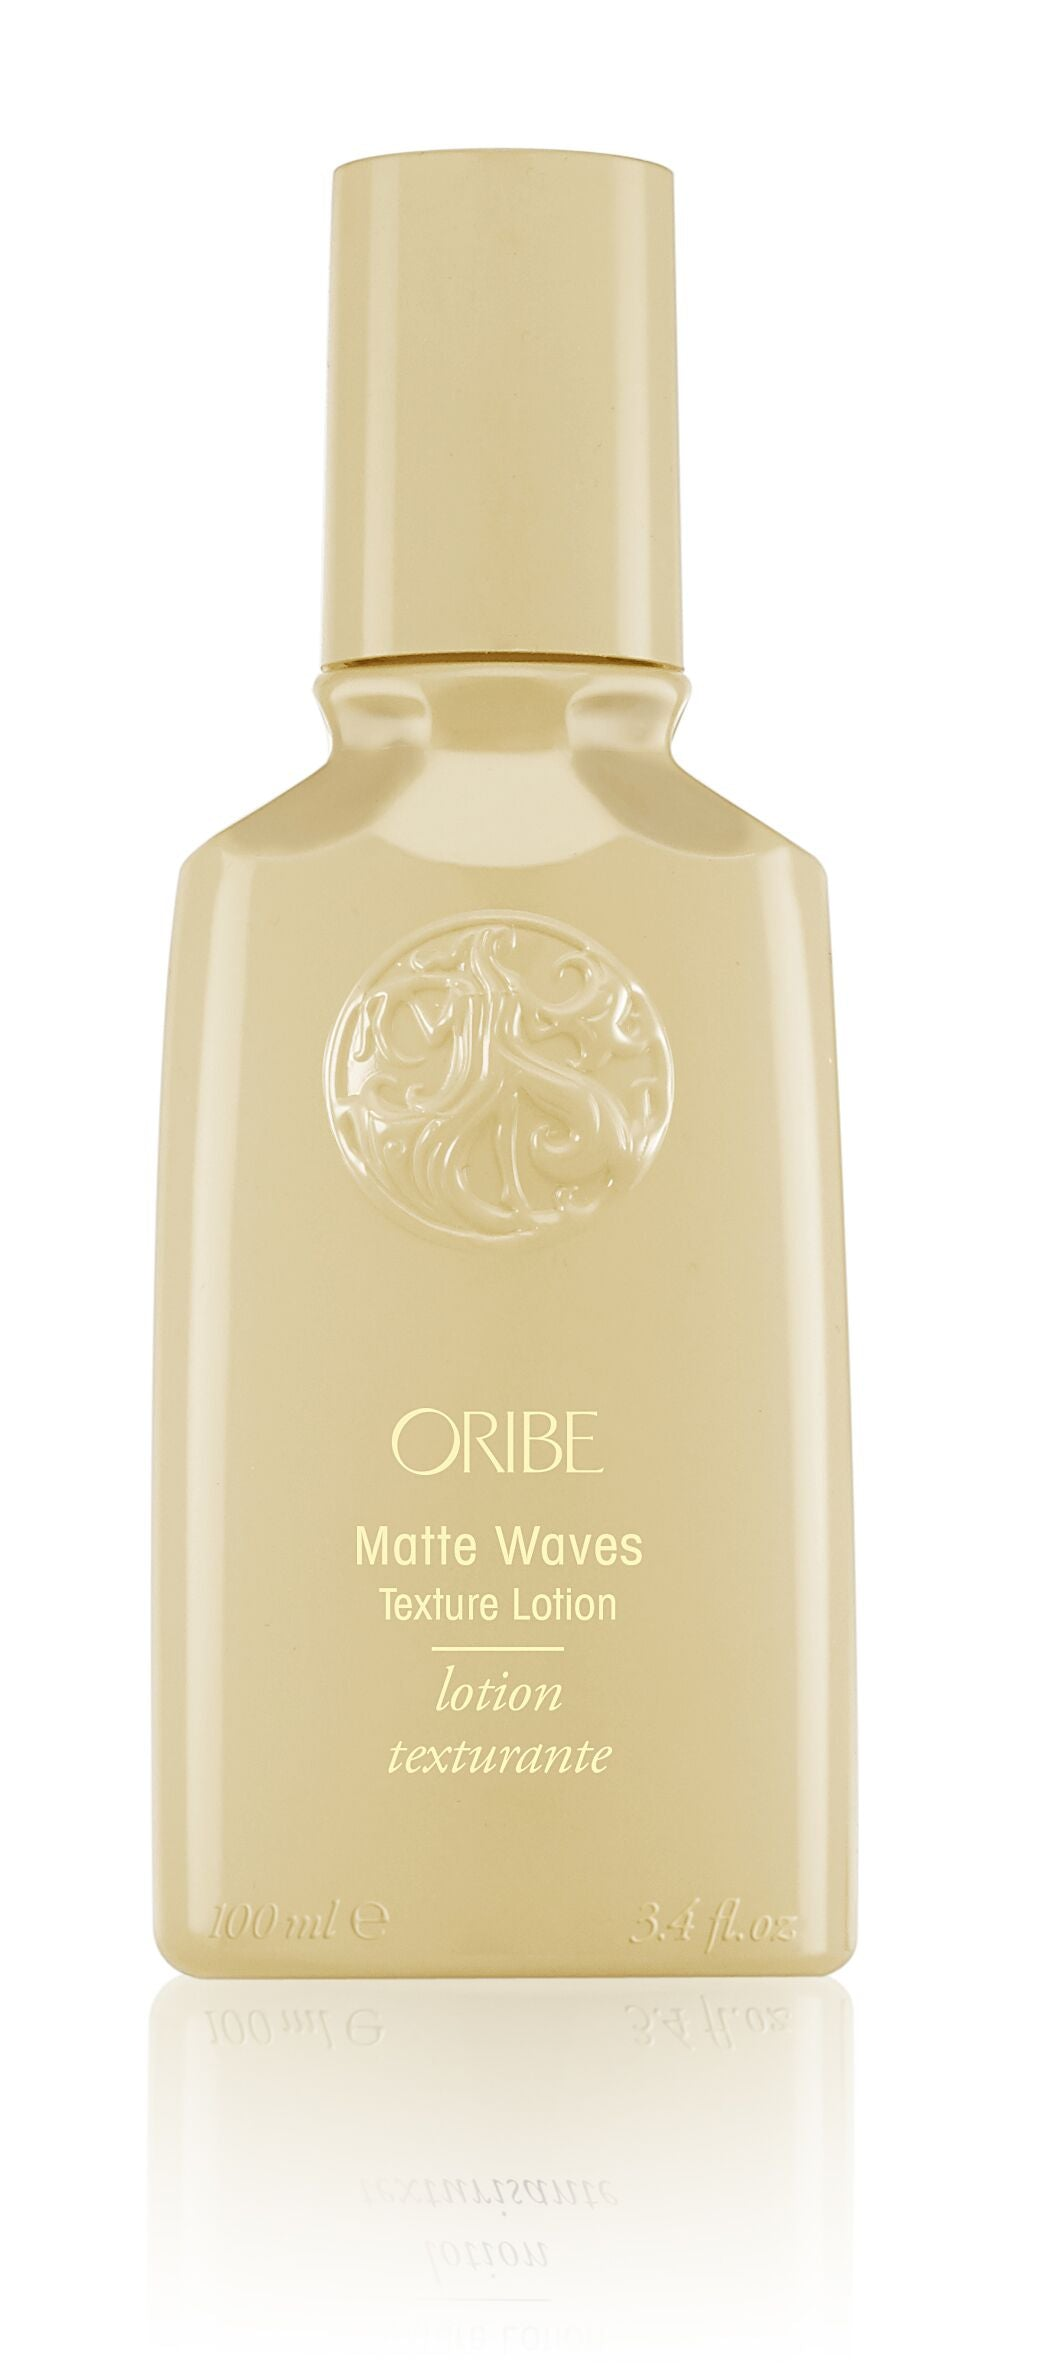 Matte Waves Texture Lotion, 3.4 OZ.